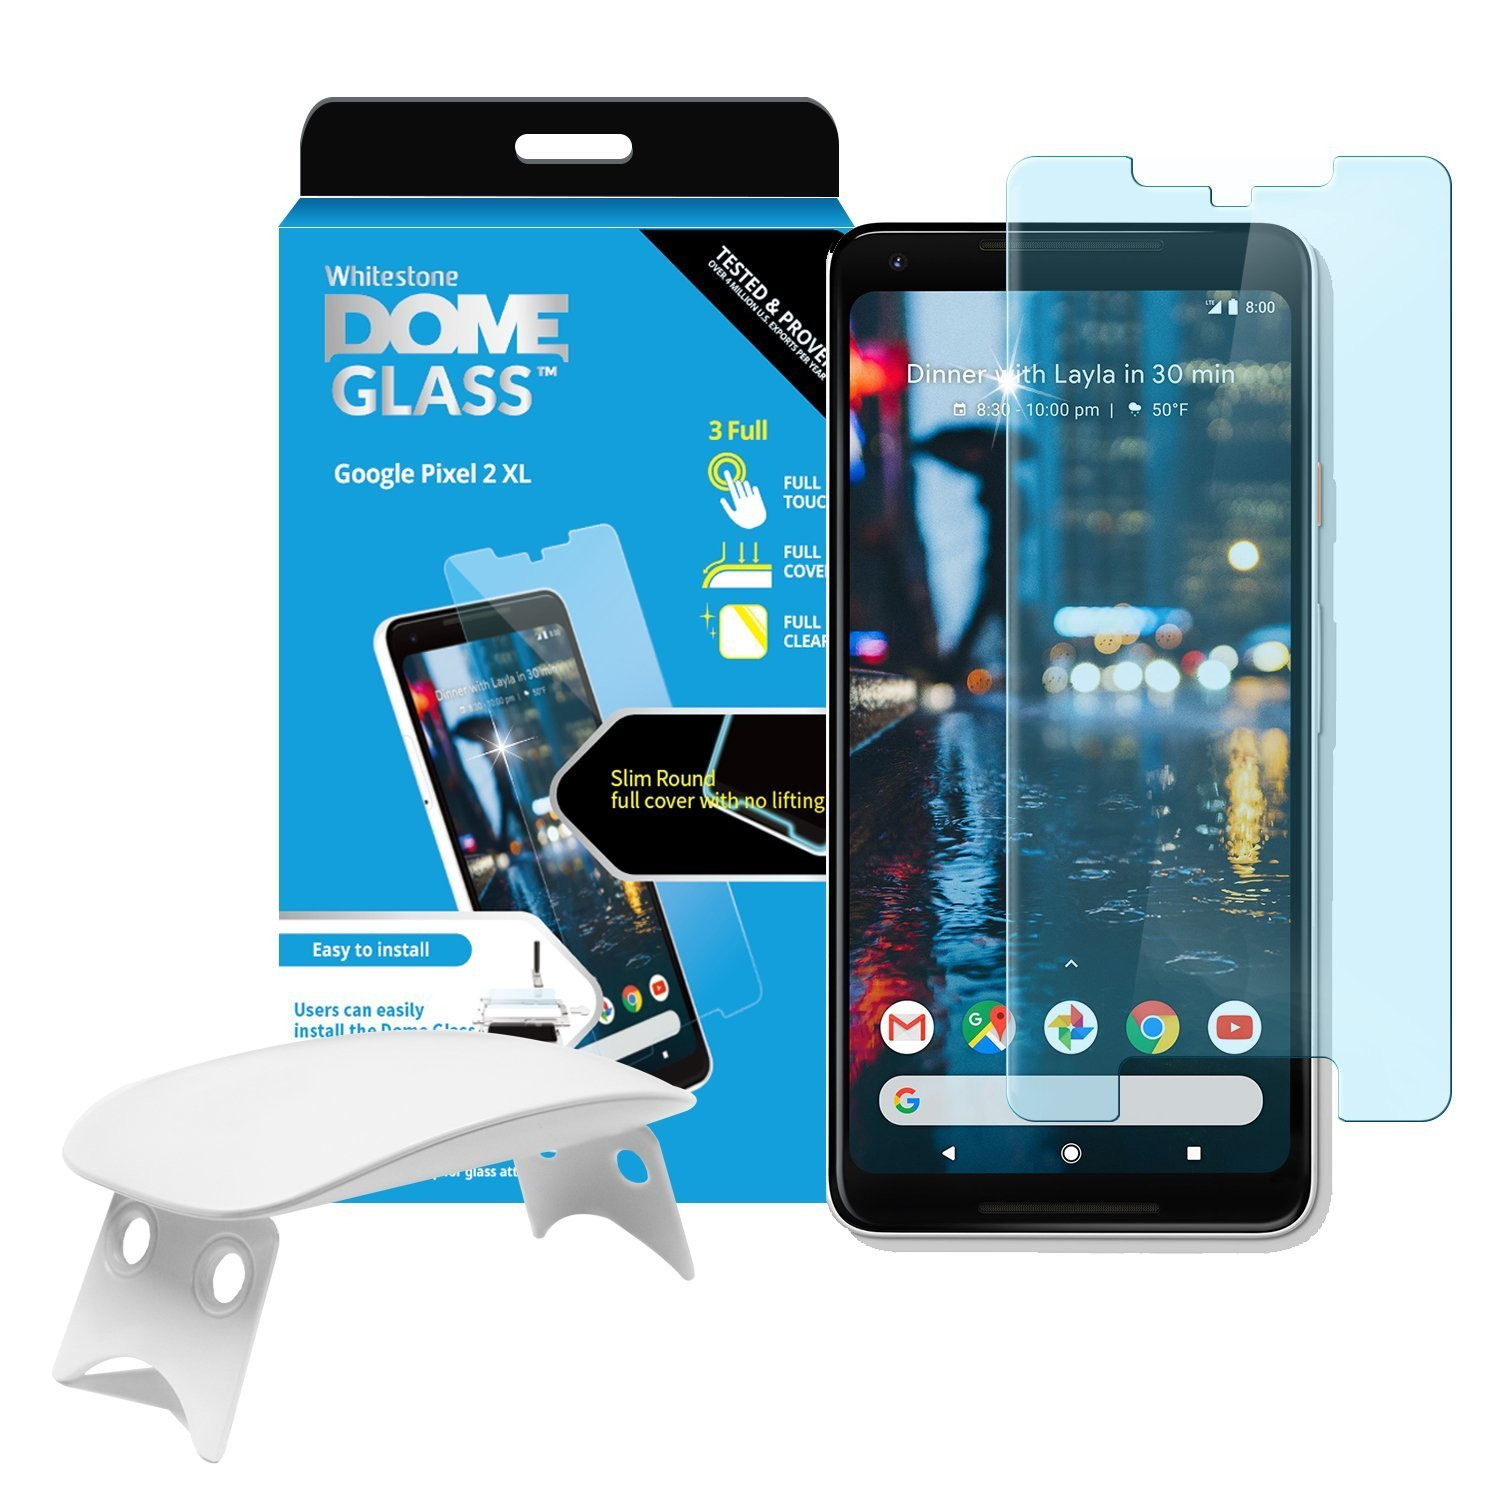 Dome Glass Google Pixel 2 XL Screen Protector Tempered Glass Shield, [Liquid Dispersion Tech] 2.5D Edge of Screen Coverage, Easy Install Kit and UV Light by Whitestone for Google Pixel 2 XL (2017) by Dome Glass